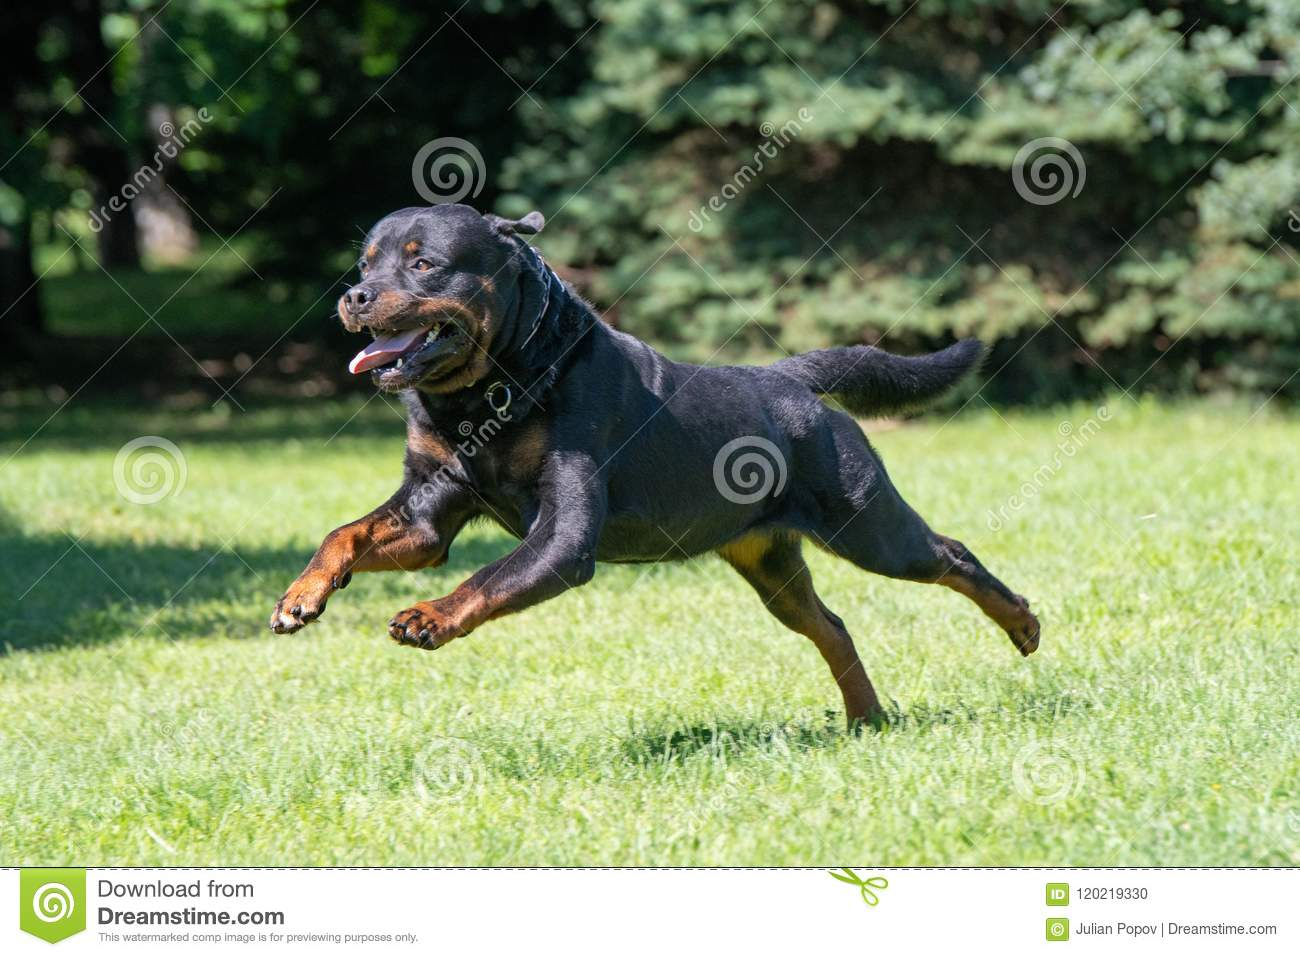 Rottweiler Running On The Grass Selective Focus On The Dog Stock